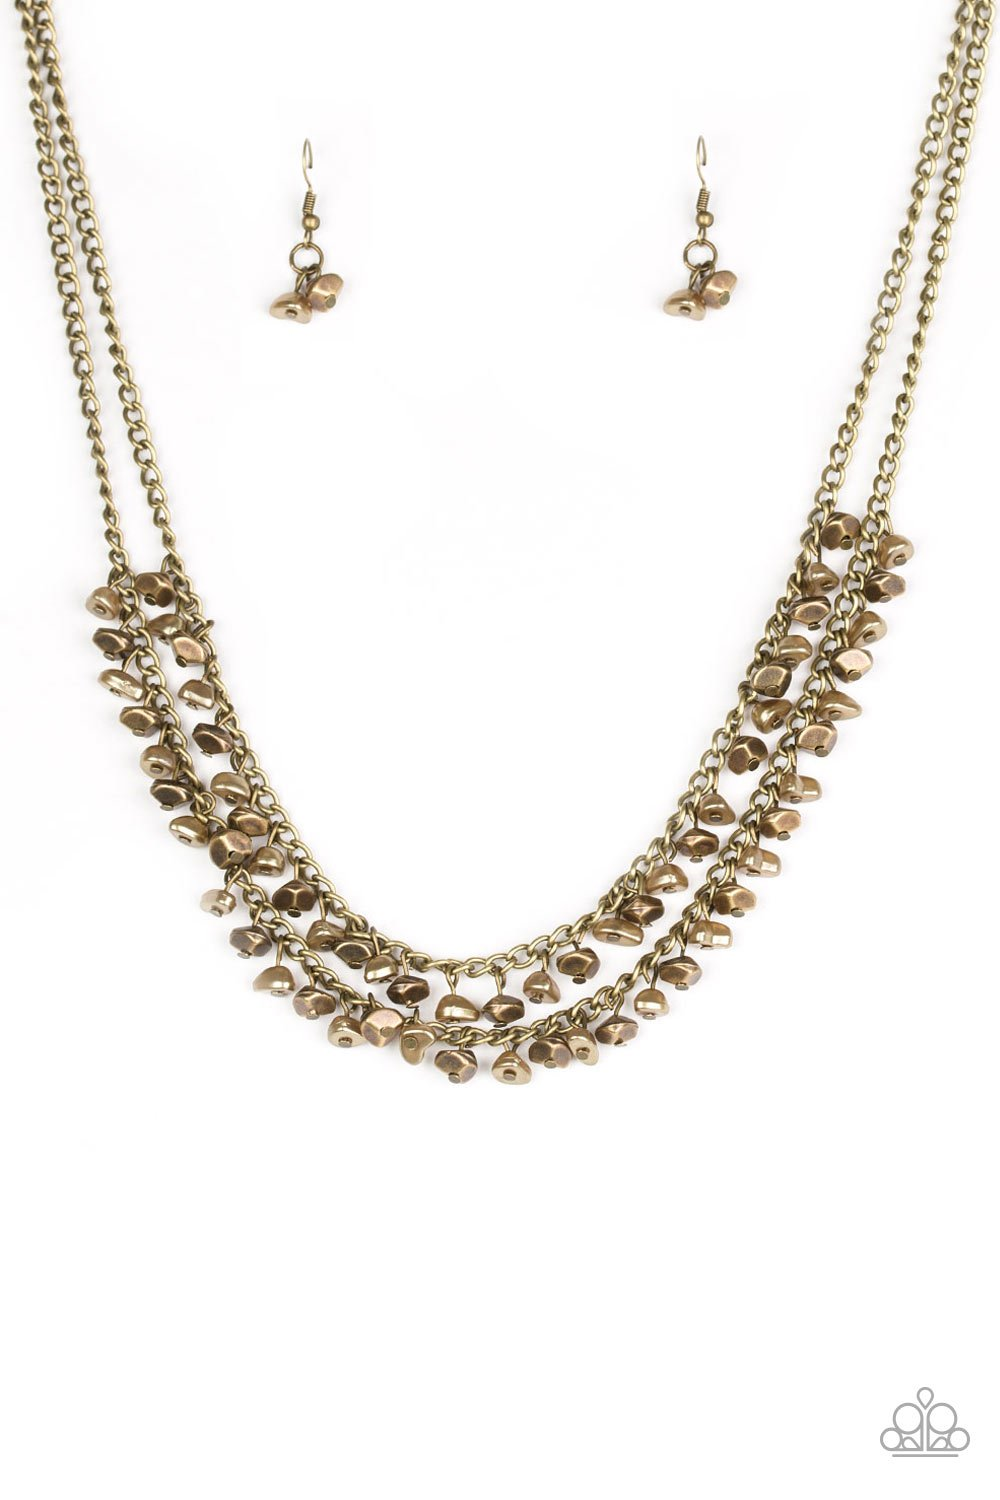 Majestic Marinas Brass Necklace